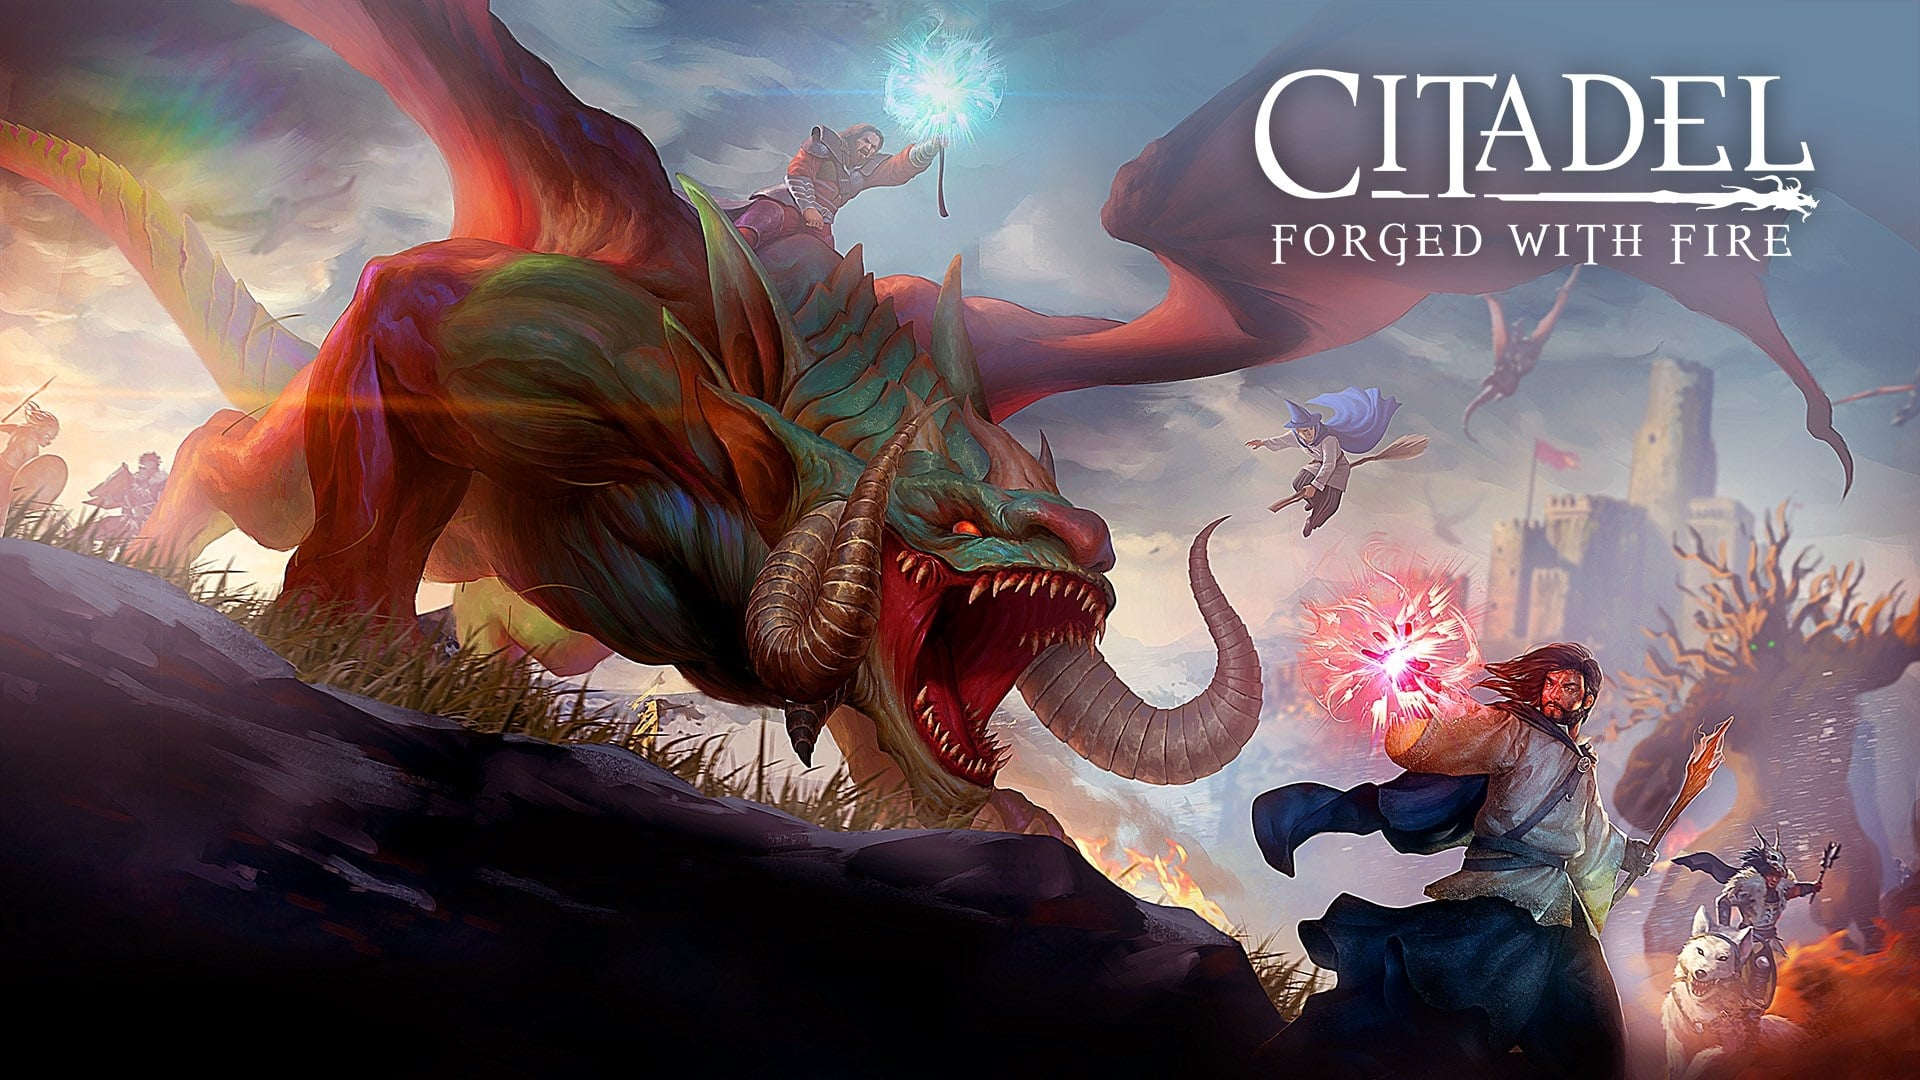 Citadel: Forged With Fire Achievements